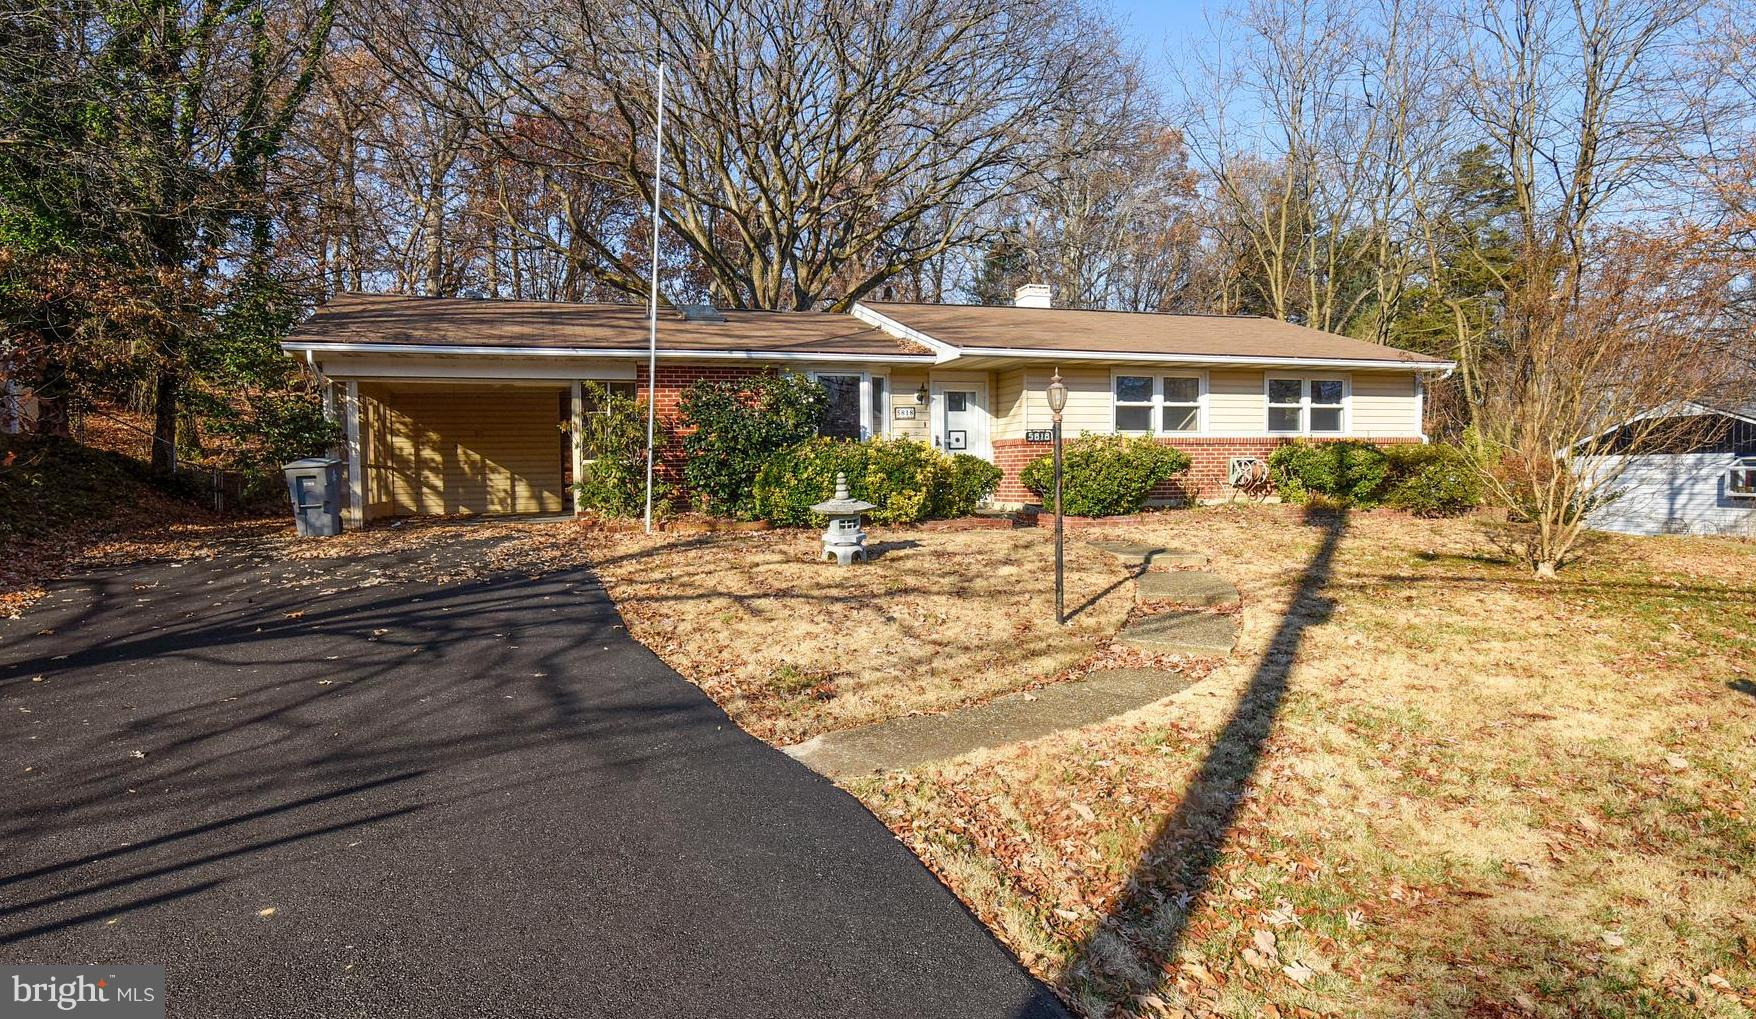 BELOW MARKET SWEAT EQUITY OPPORTUNITY.... Structure is sound and many systems newer, just very dated..... live here while you remodel....estimated  $75,000 below after repair value..... BIG TICKET ITEMS COVERED - HVAC approx 2011, Water heater fall 2018, Roof estimated 6 years, driveway resealed this fall....Huge family room addition with a gas stove....skylight in the living room and kitchen...Screened porch off the family room.... Lots of storage - closet in the carport, closet in the screened porch and workshop/shed with electric service in the rear....Carport with direct entry into the kitchen....Ceiling fans in each bedroom...full bath in the master....pull down stairs to the attic in the hall and another in the carport.... Terrific chance to get into a great neighborhood at a bargain price.